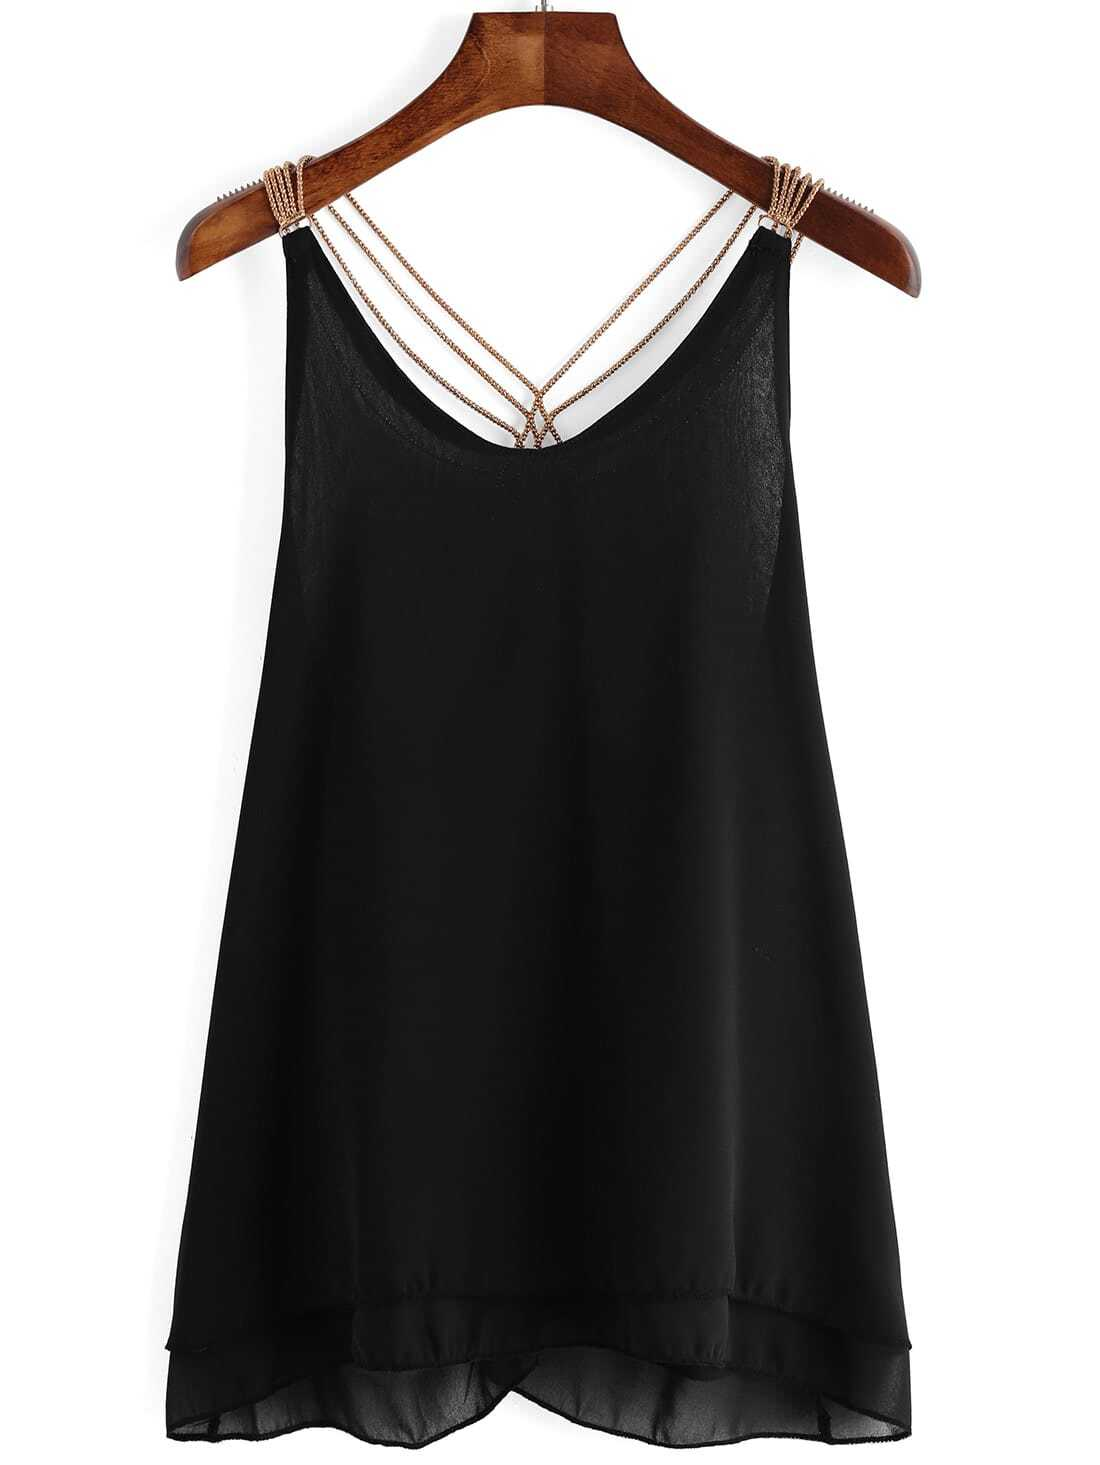 Black Chain Strap Chiffon Cami Top